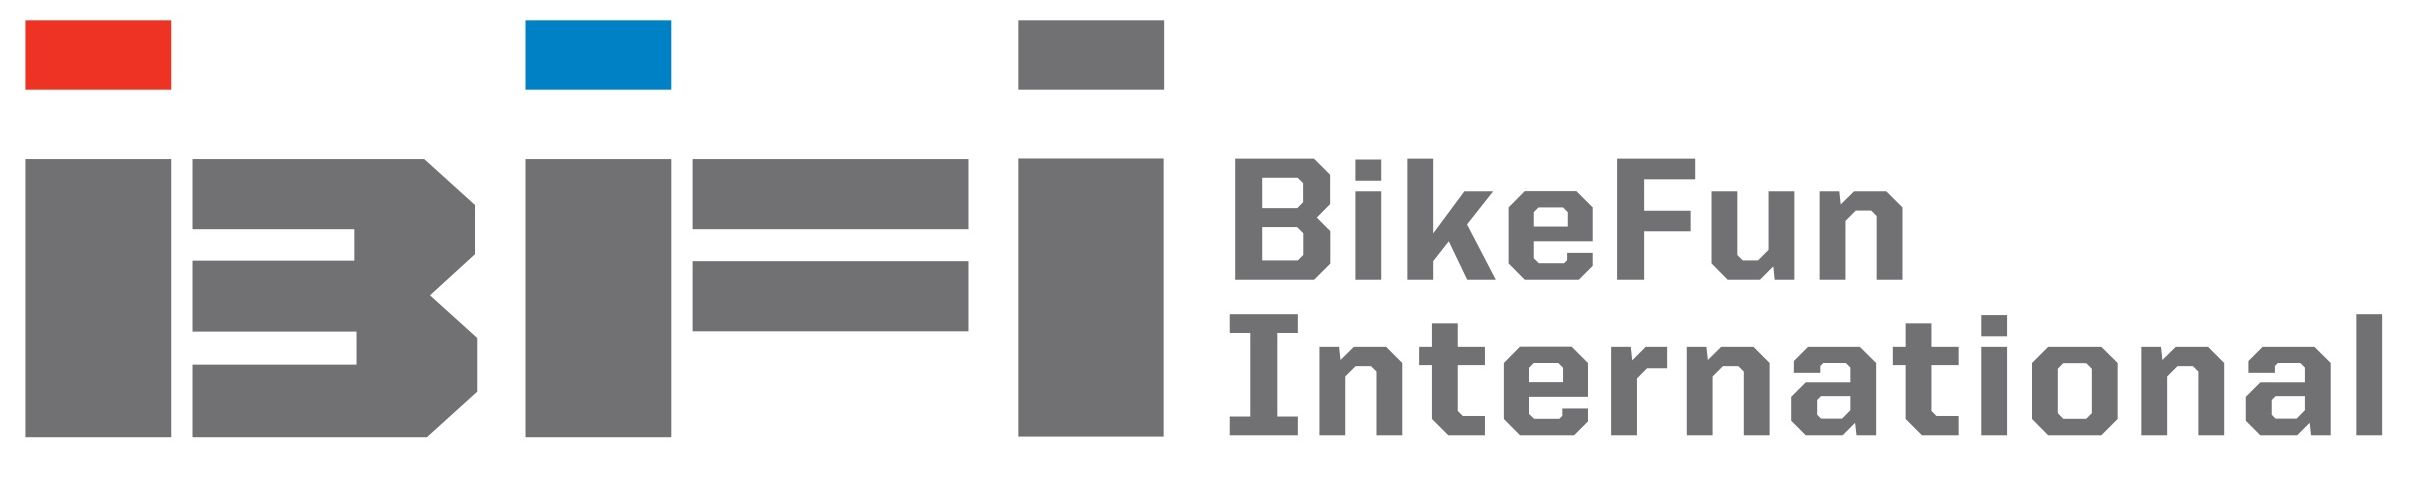 BIKE FUN International s.r.o.